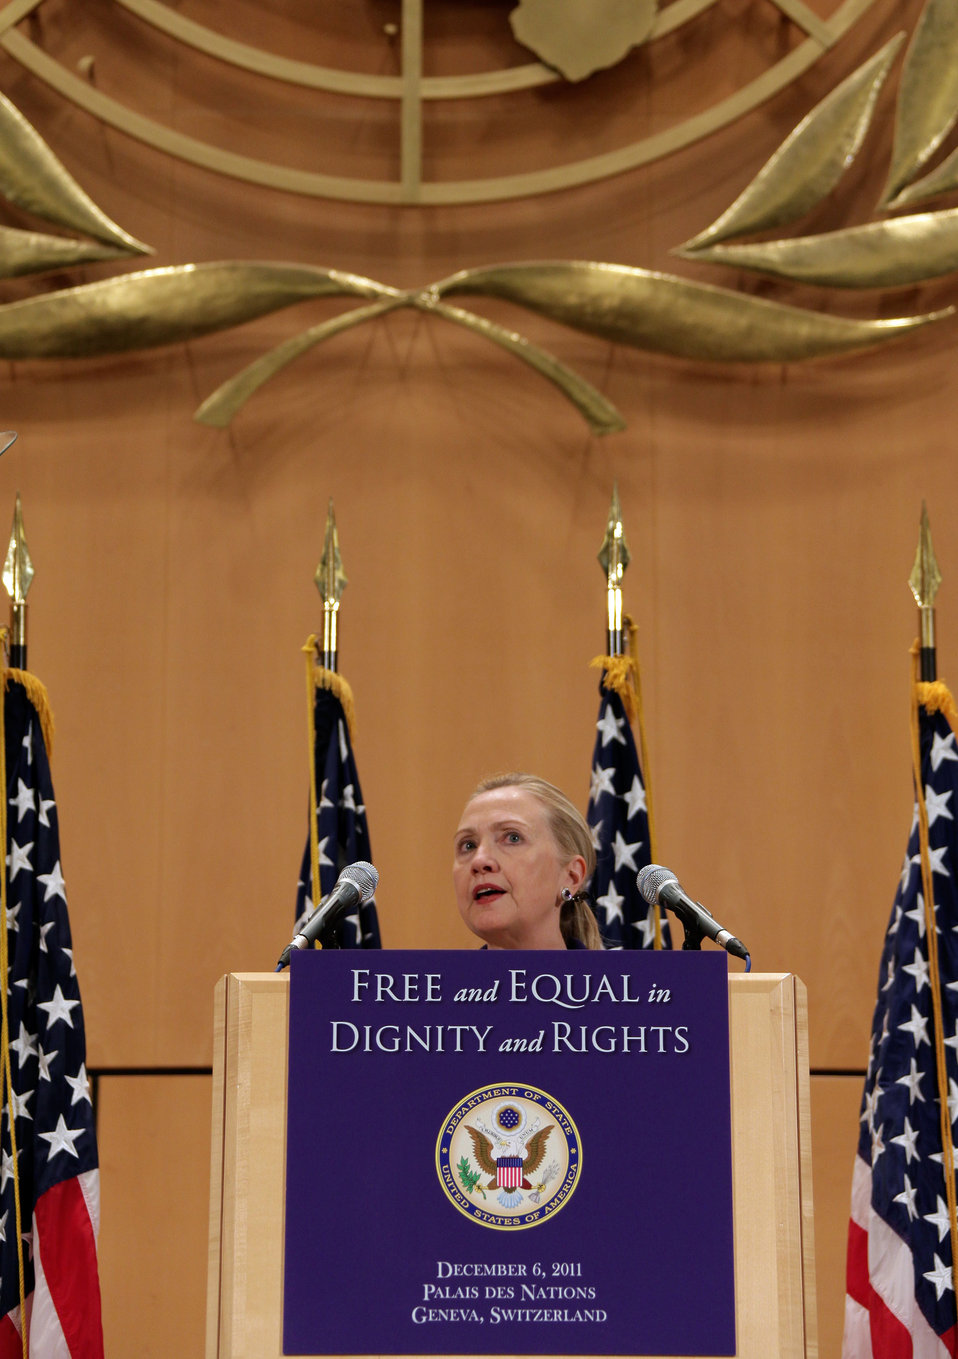 Secretary Clinton Delivers Remarks in Honor of International Human Rights Day